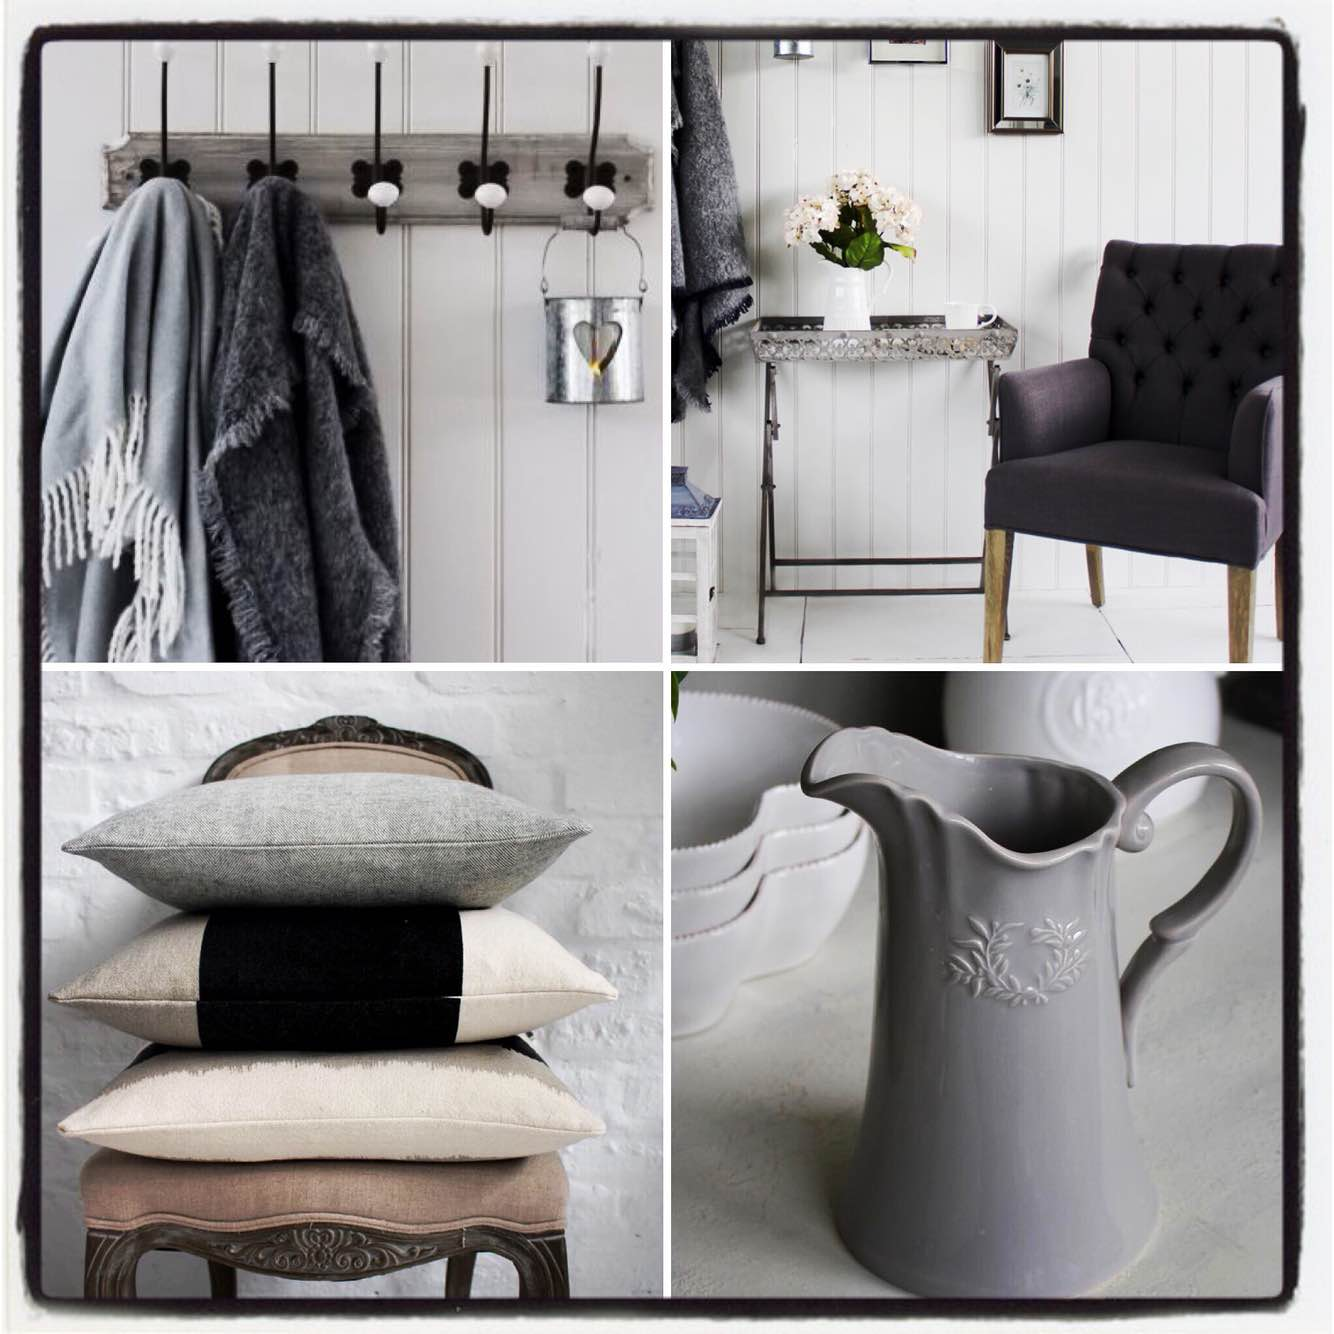 Grey is so stylish, especially at Christmas. Get some home decor tips by visiting House of Treasures Emporium and discovering hidden treasures... #greytones #stylish #elegant #christmasdecor #wintryhues #homeaccessories #styleyourhome #styleinspiration #giftideas #houseoftreasures #hiddentreasures